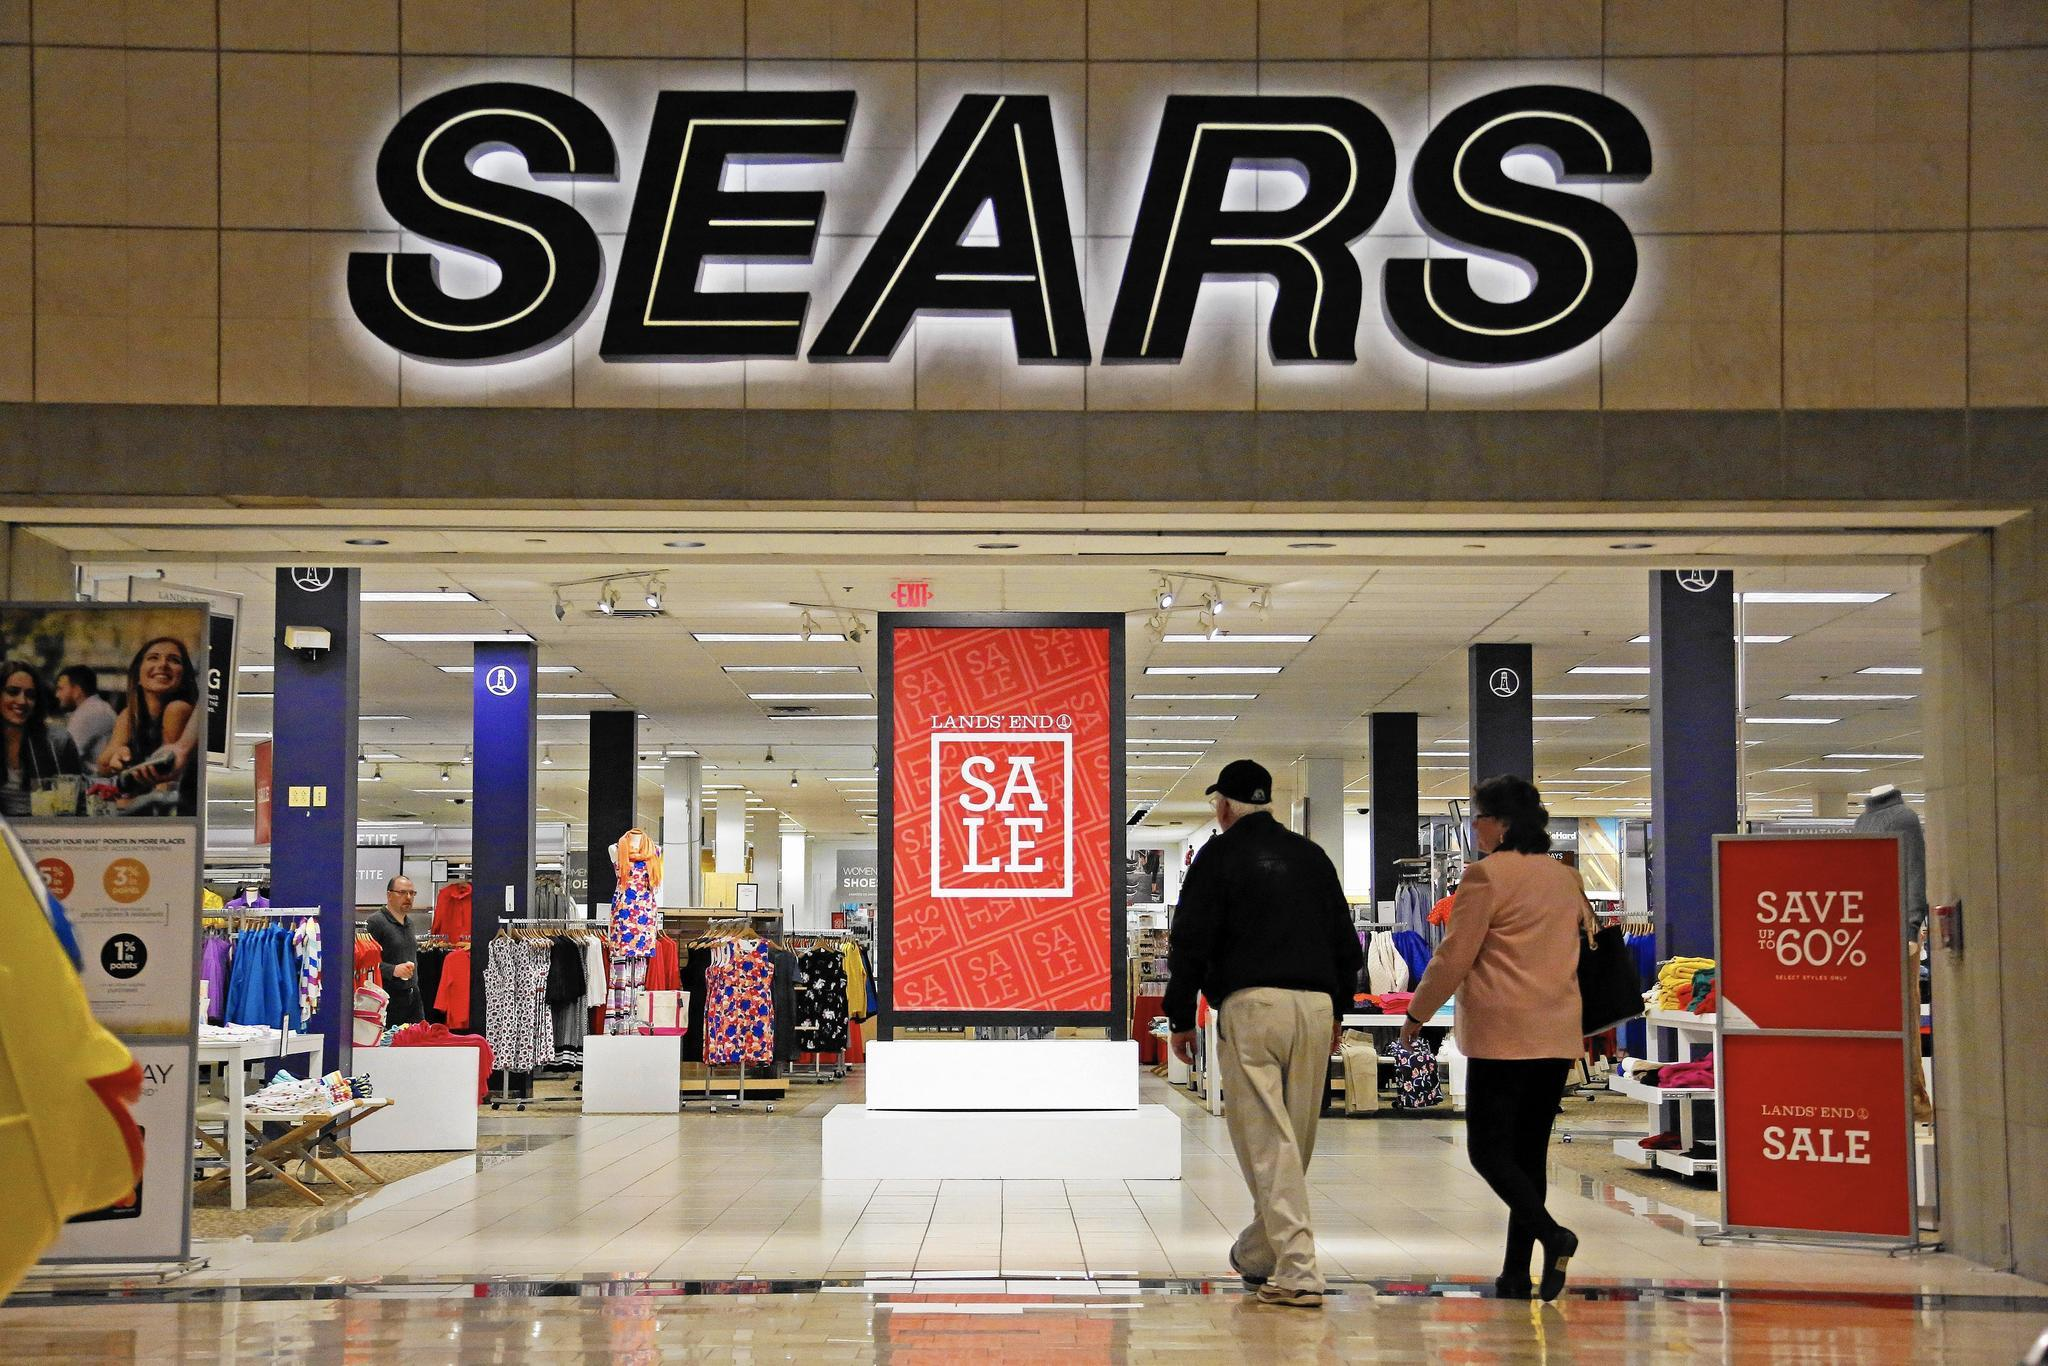 The end of Sears Retailer has substantial doubt about its